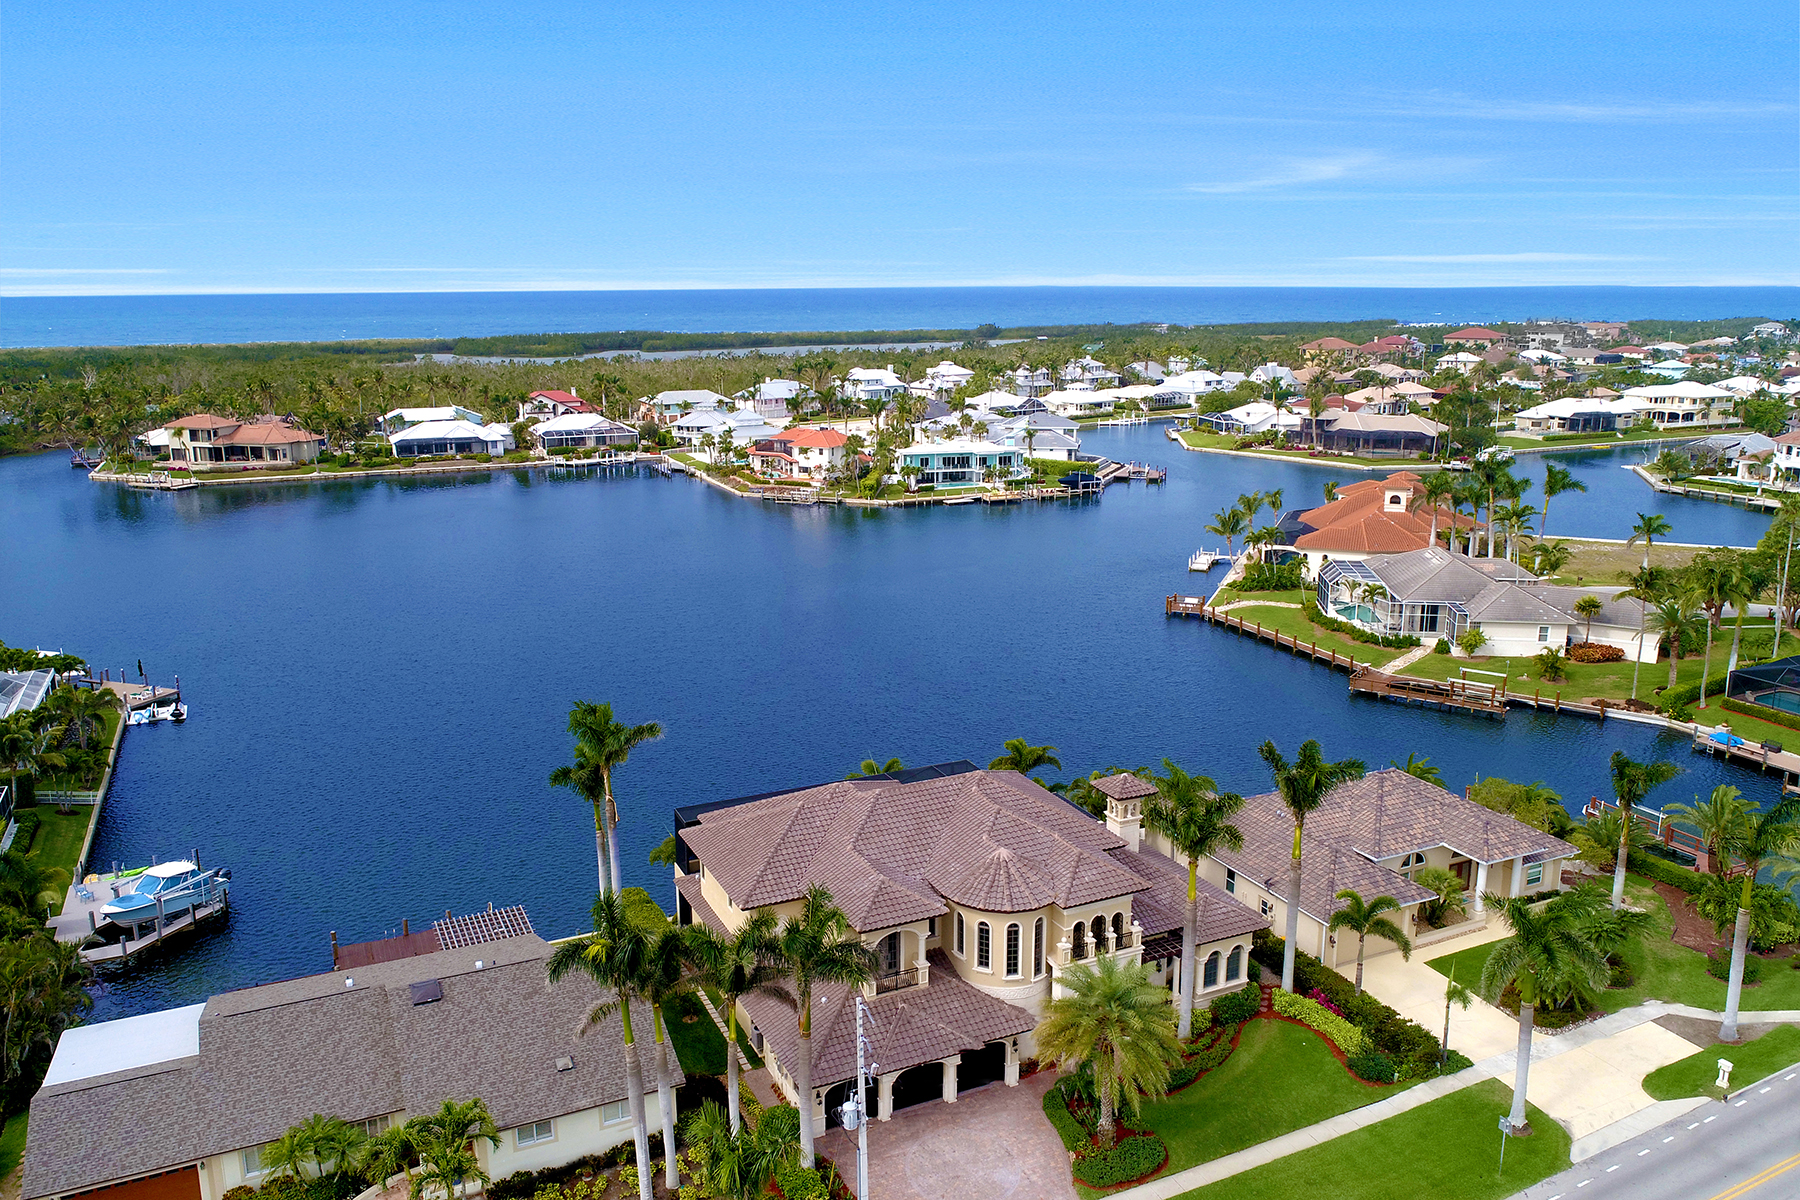 Single Family Home for Sale at MARCO ISLAND 503 Kendall Dr, Marco Island, Florida 34145 United States